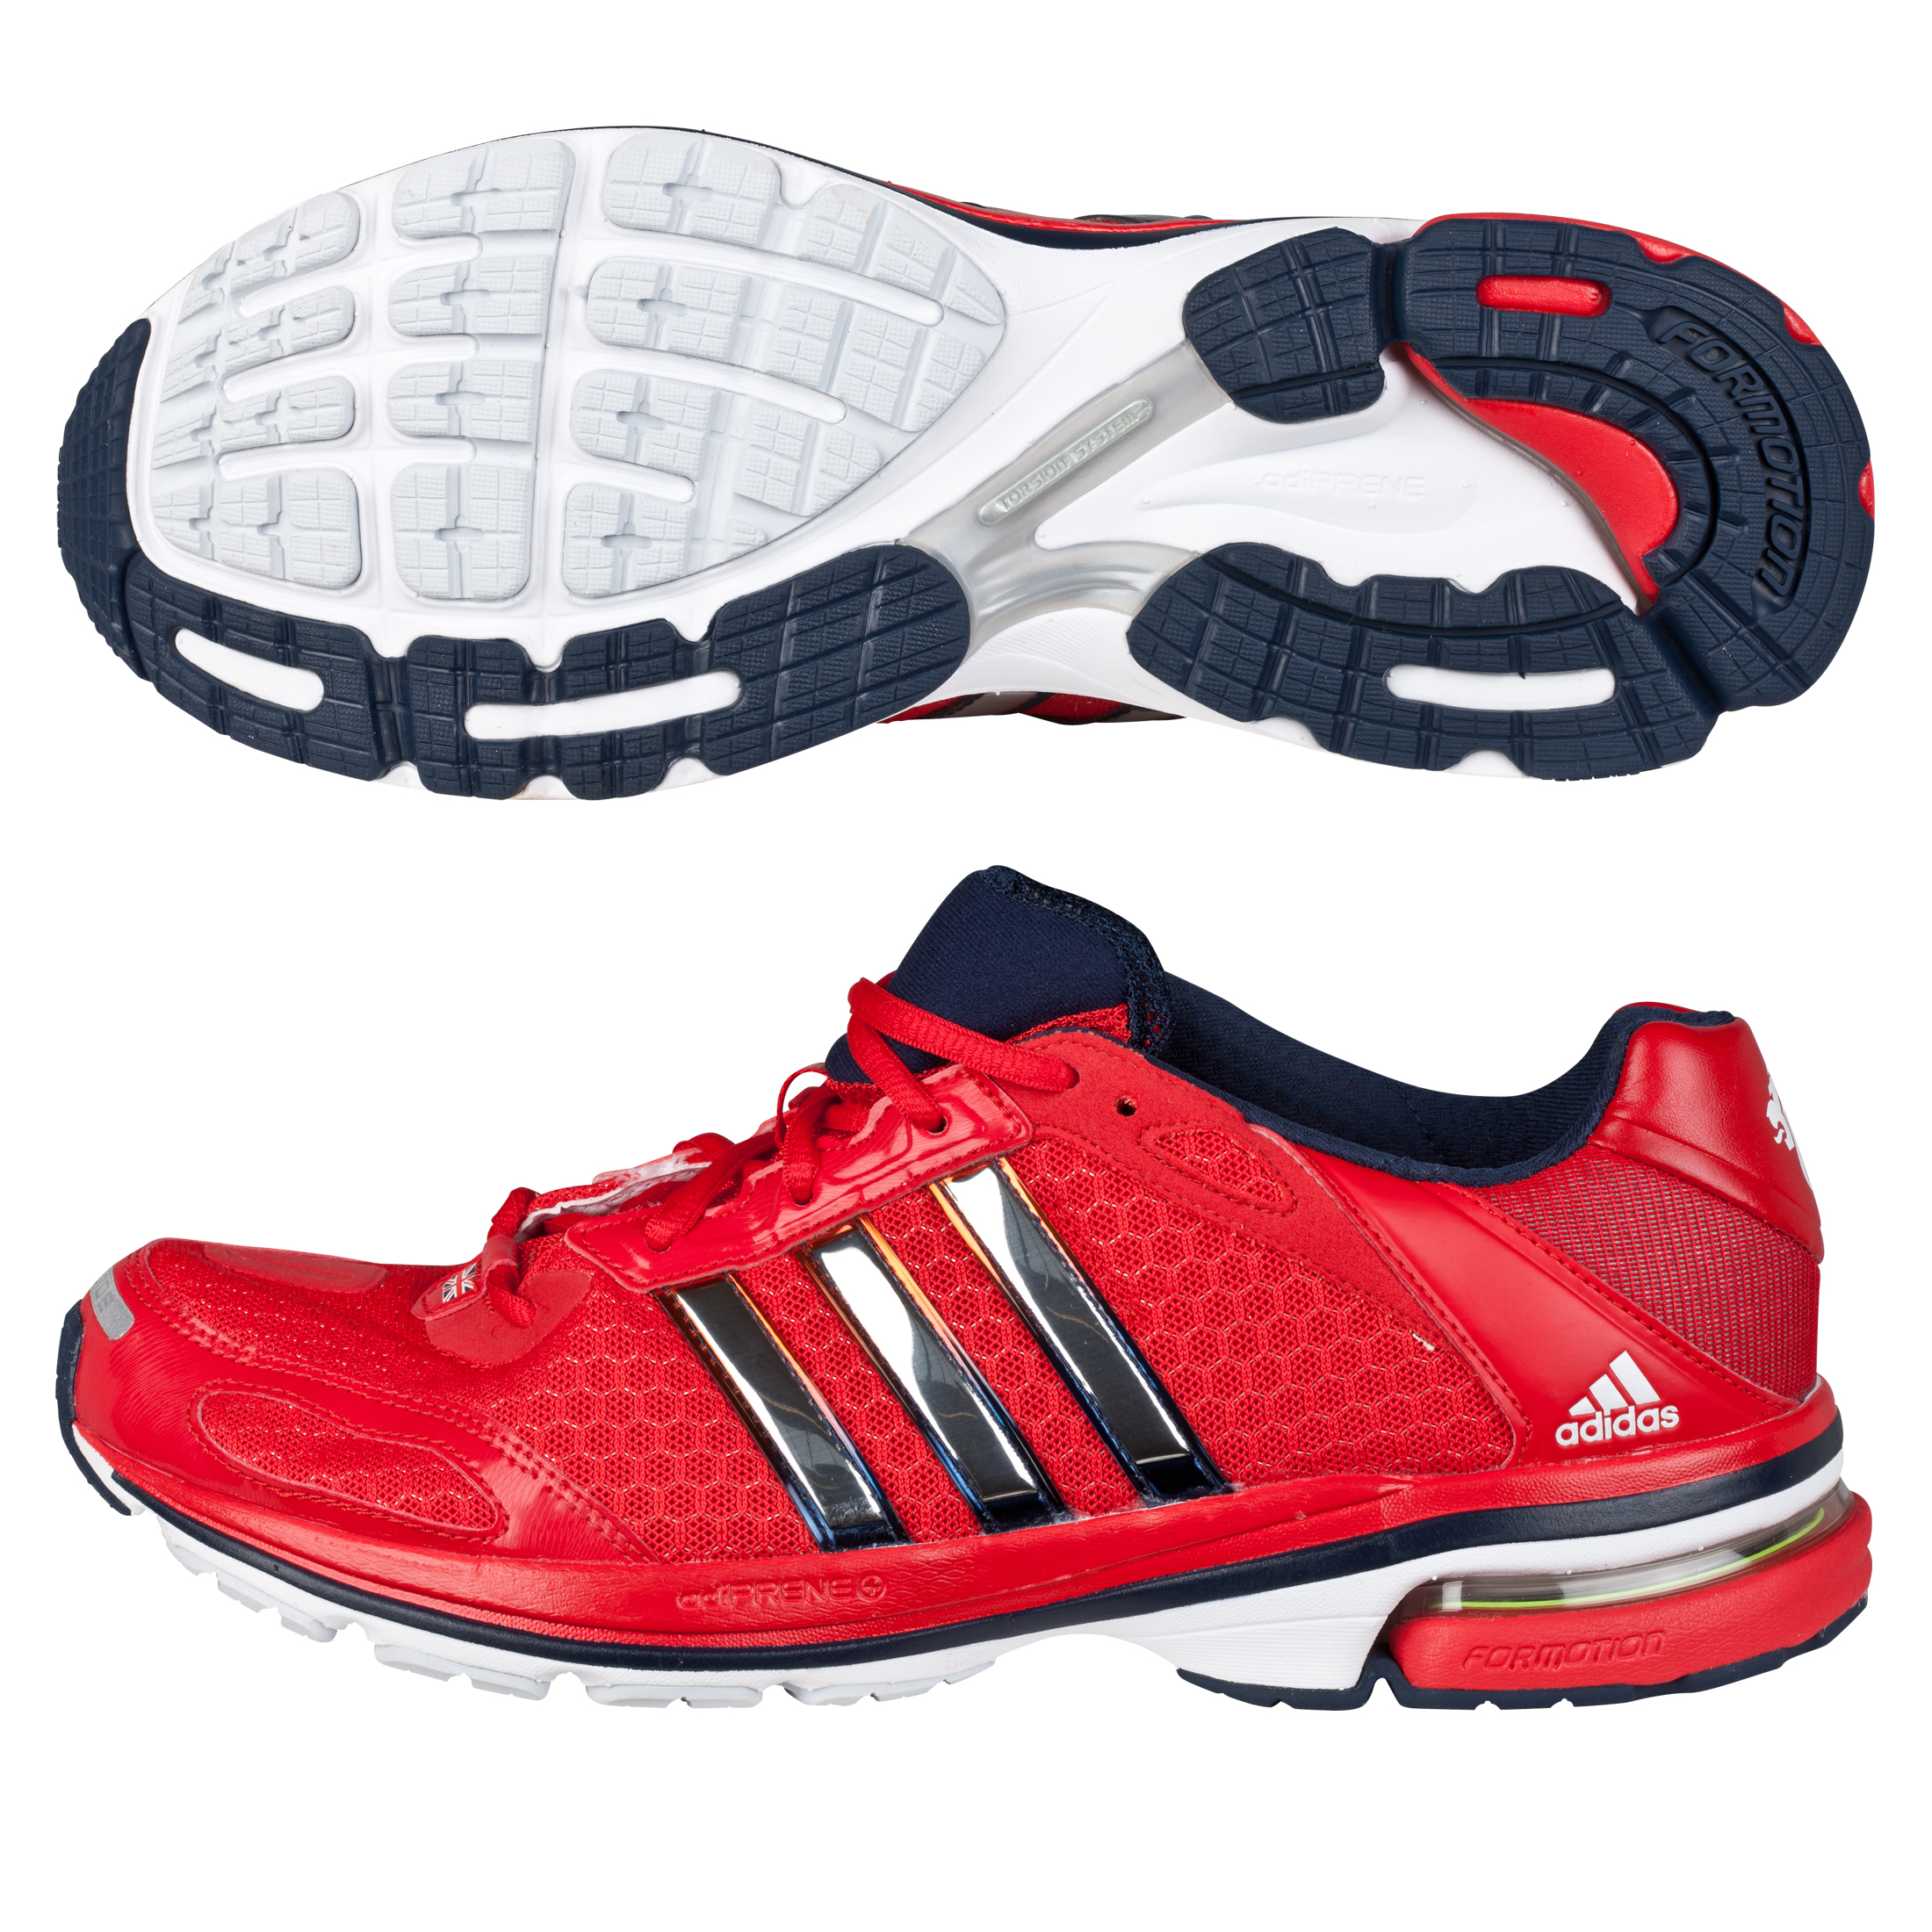 Adidas Supernova Glide 4 Running Trainers - Vivid Red/Metallic Silver - Womens